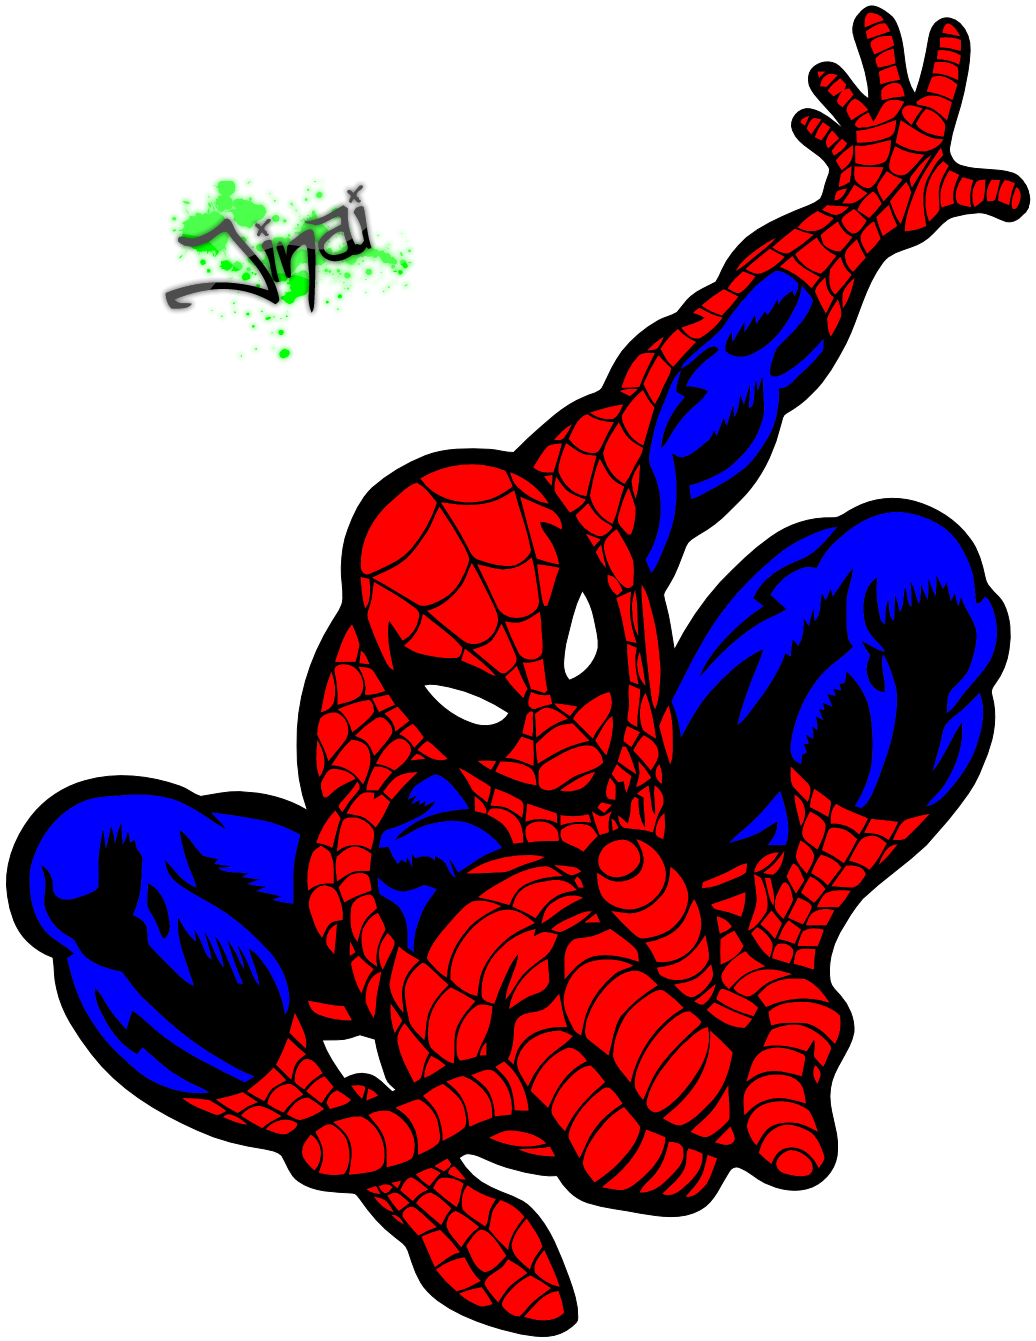 Dessins en couleurs imprimer spiderman num ro 476275 - Photo de spiderman a imprimer gratuit ...